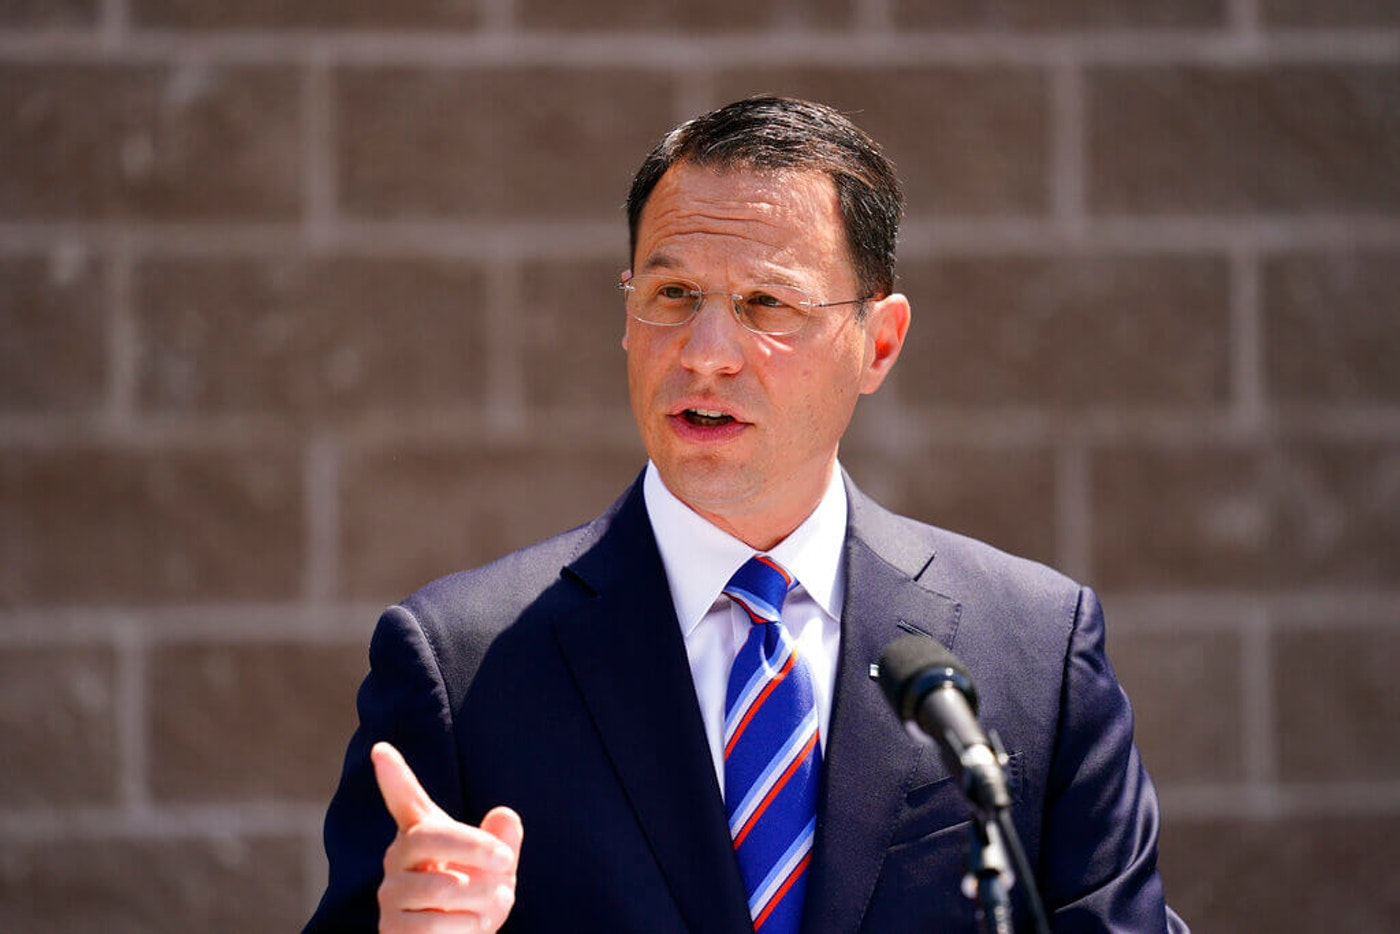 Pennsylvania Attorney General Josh Shapiro speaks with members of the media during a news conference in Darby, Wednesday, June 2, 2021. (AP Photo/Matt Rourke)